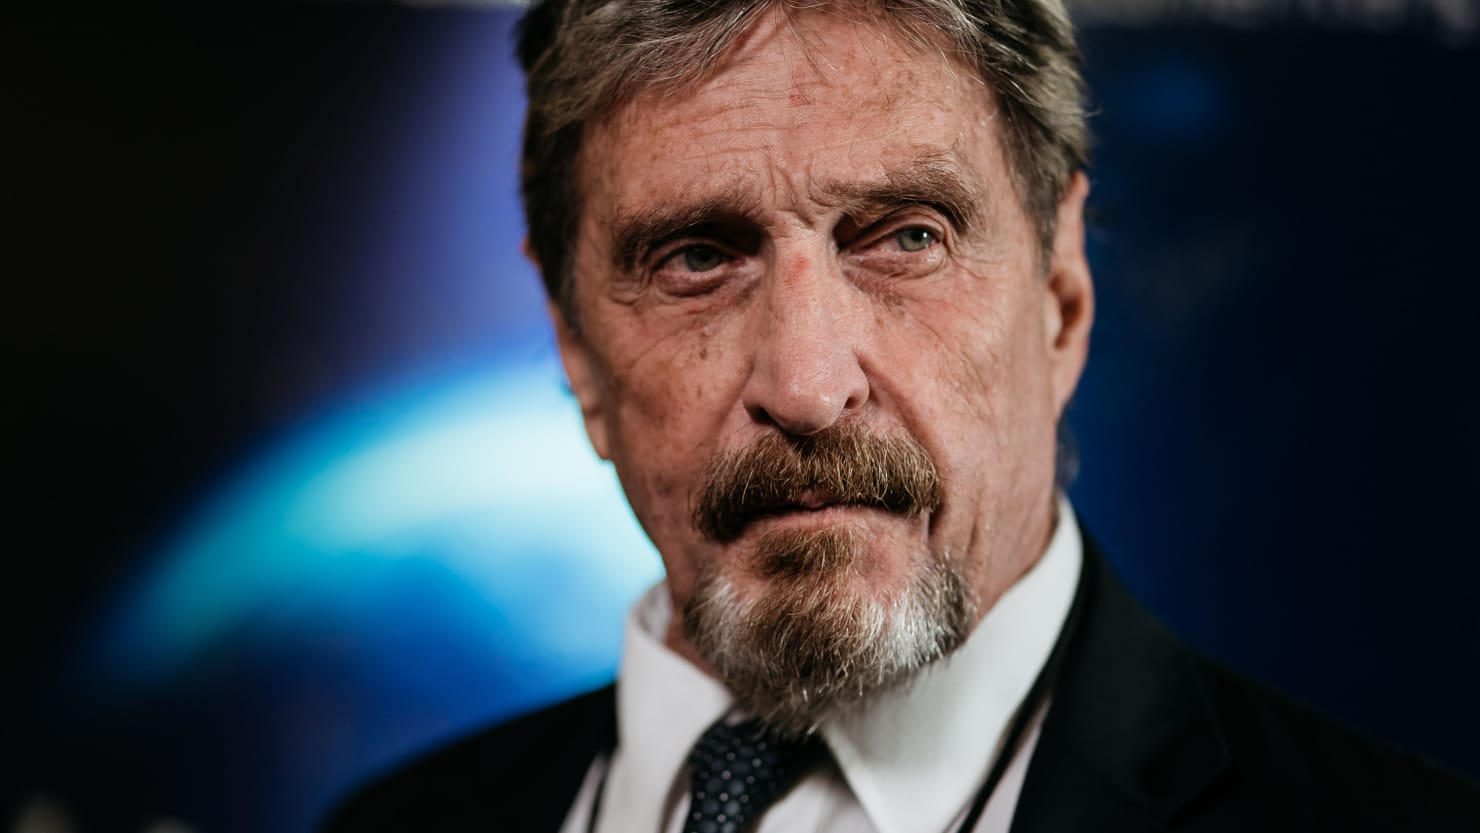 Eccentric Antivirus Multi-millionaire John McAfee Accused of Making Thousands and thousands in Unlawful Crypto Schemes